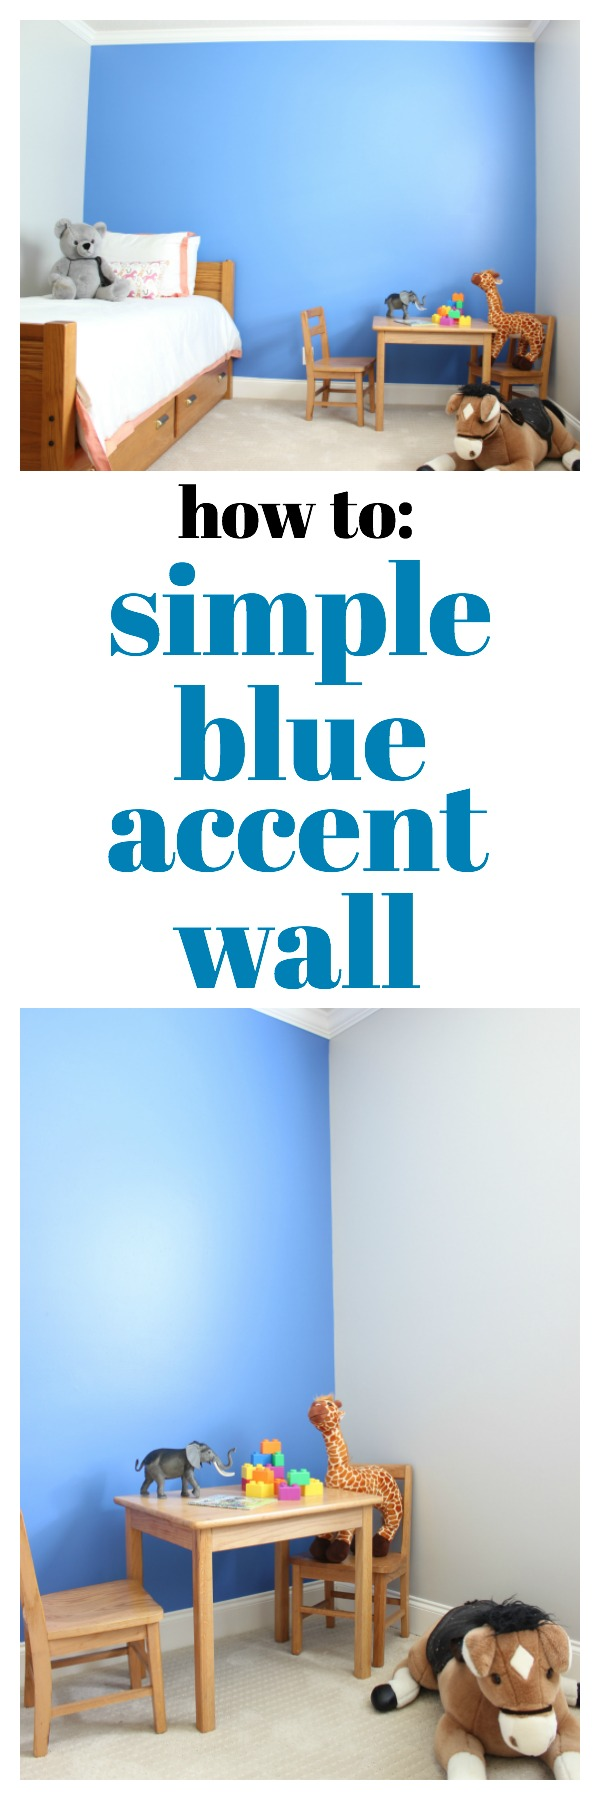 Simple Blue Accent Wall | DIY Accent Wall Ideas | DIY Feature Wall Ideas | Kid's Room Decor | Easy Accent Wall | Behr Boat House